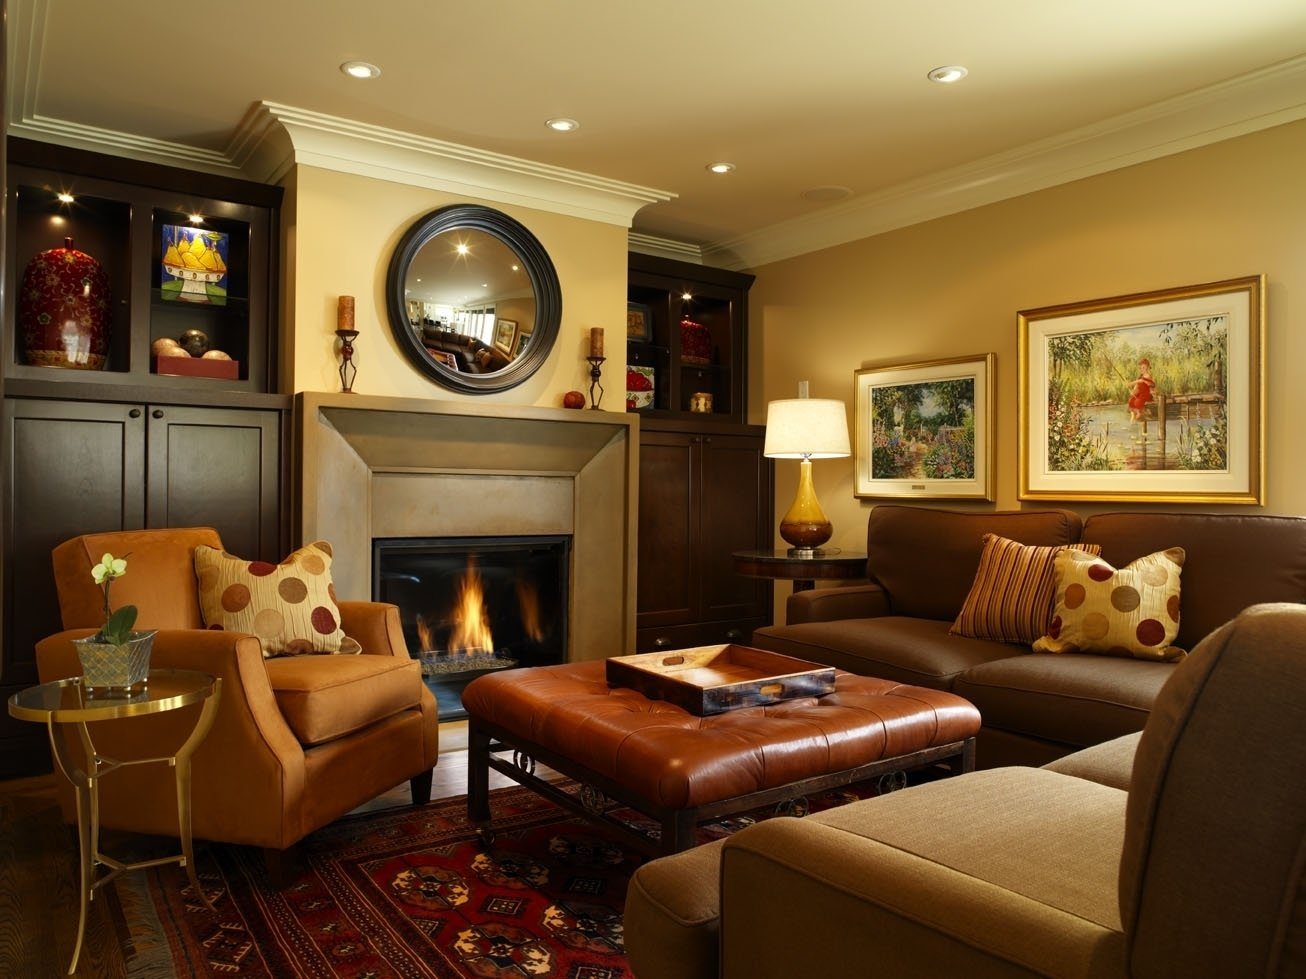 10 Most Popular Decorating Ideas For Family Rooms enchanting small family room ideas photo design inspiration 1 2021